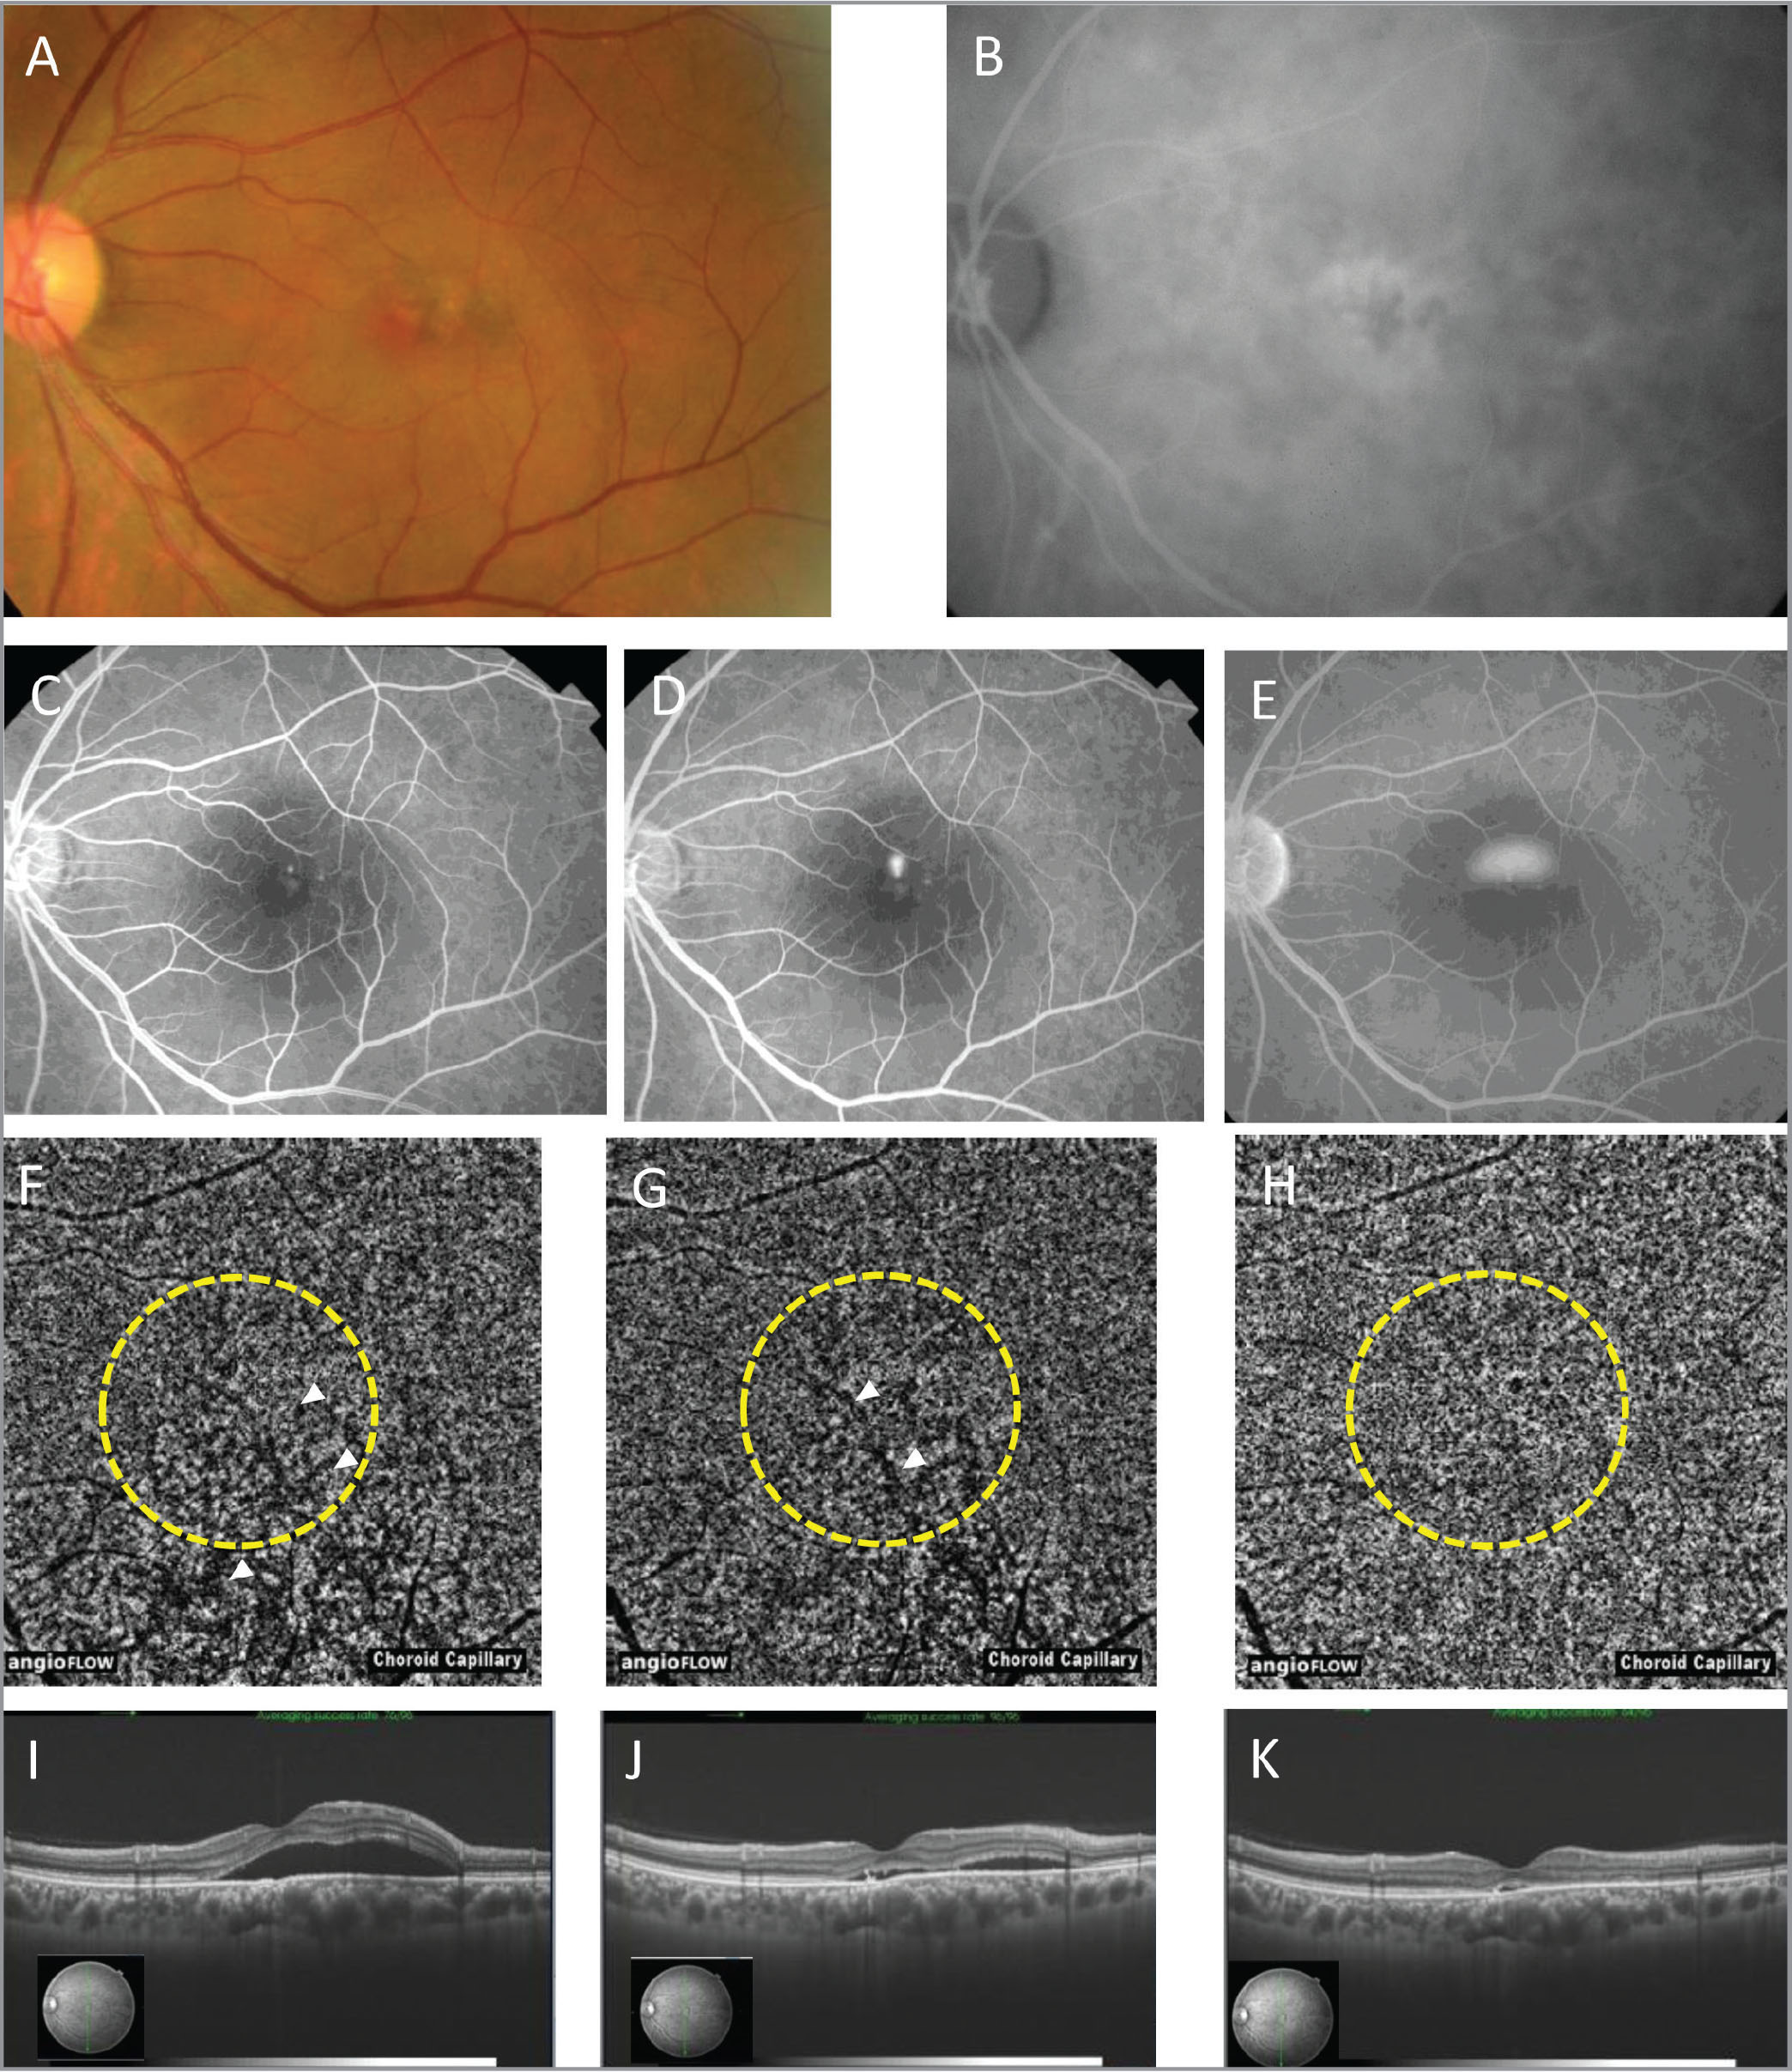 A;Multimodal imaging of the left eye of Case 3. (A) Color fundus photograph. (B) Middle phase of indocyanine green angiography. (C–E) Fluorescein angiography in early to middle phase (C), middle phase (D), and late phase (E). (F–H) Optical coherence tomography angiography (OCTA) before photodynamic therapy (PDT) (F), 1 week after PDT (G), and 1 month after PDT (H). The PDT spot area is encircled by yellow dots. Before PDT, focal high-intensity lesion indicating abnormal choroidal vessels, and flow void lesion at the choriocapillaris layer are observed (F). Flow void lesion increases at 1 week after PDT comparing with before PDT. The lesion decreases at 1 month (G and H). Before and 1 week after PDT, OCTA depicts relatively large choroidal vessels in the macular area and inferior to the macula (white arrow heads). These findings are diminished progressively at 1 week and 1 month after PDT (G, H). (I–K) OCT before PDT (I), 1 week after PDT (J), and 1 month after PDT (K).